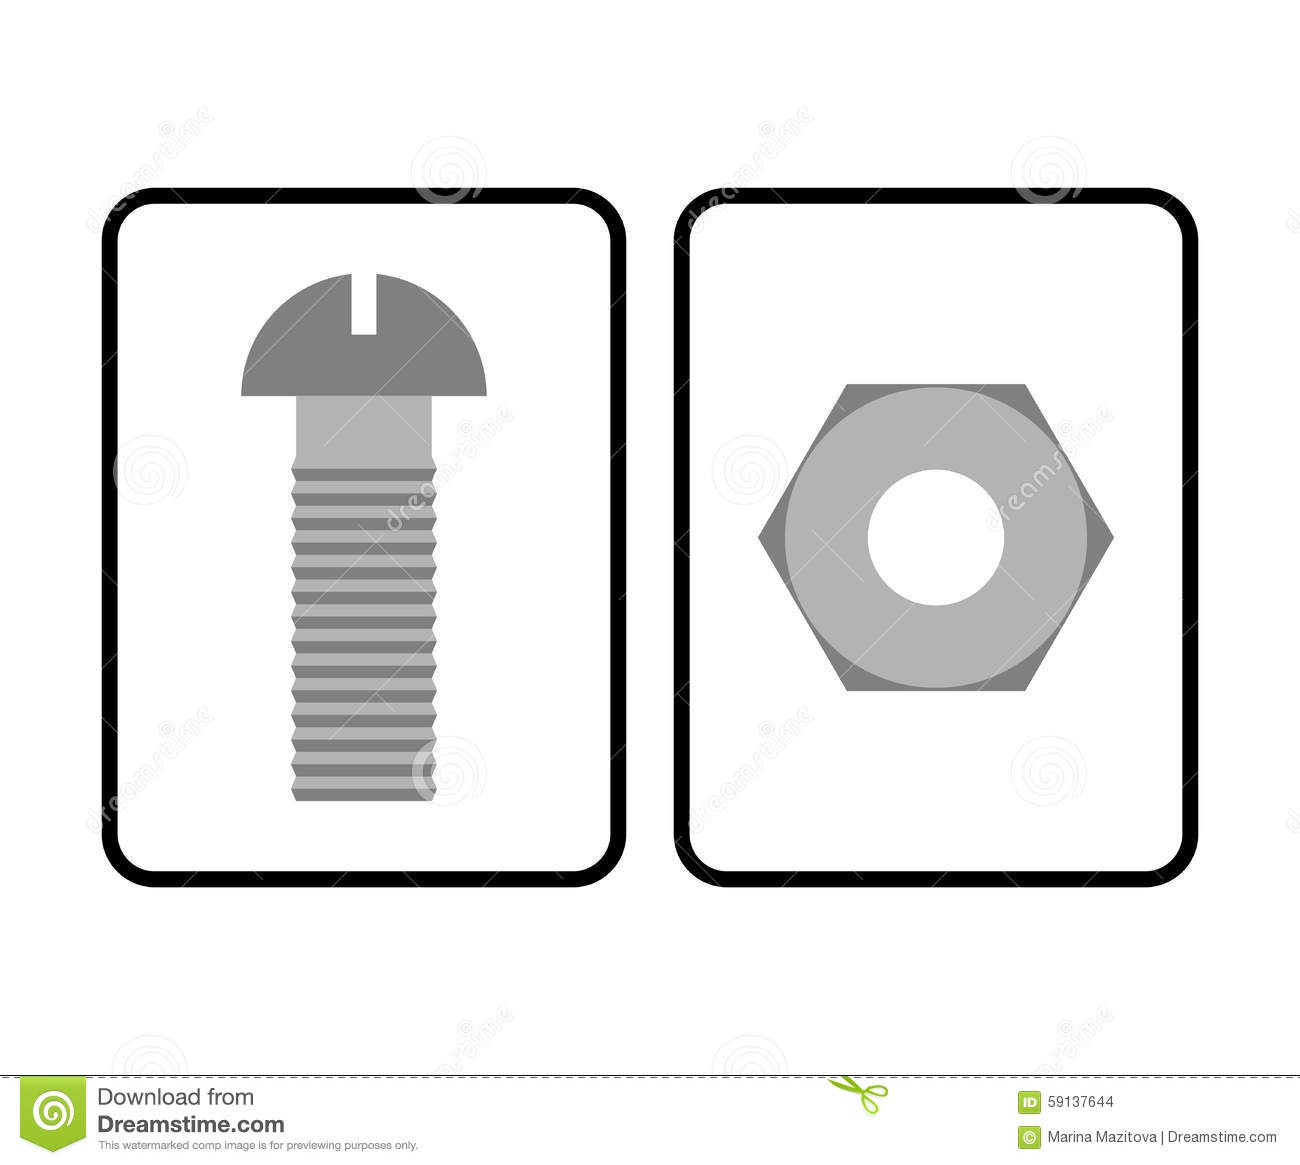 Man And Woman Restroom Sign Toilet Sign Bolt And Nut Humorous Stock Vector Image 59137644